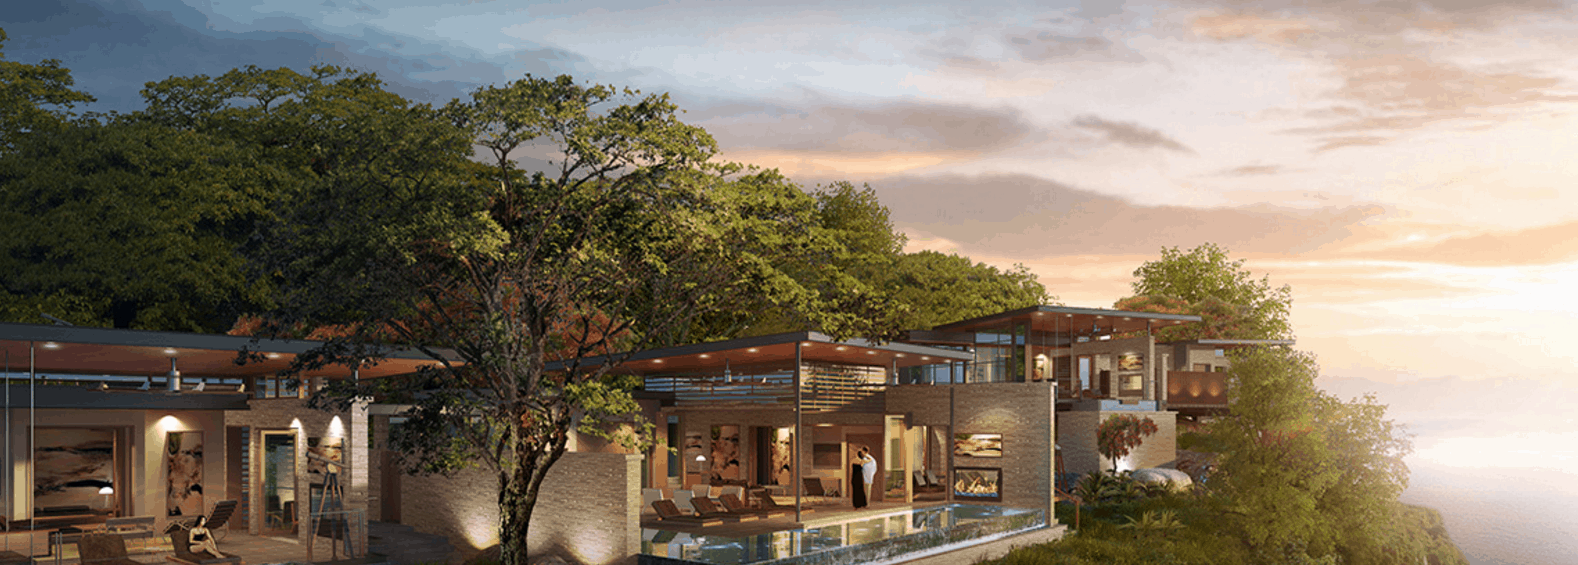 rosewood-3 Rosewood Papagayo, Costa Rica To Open in 2019